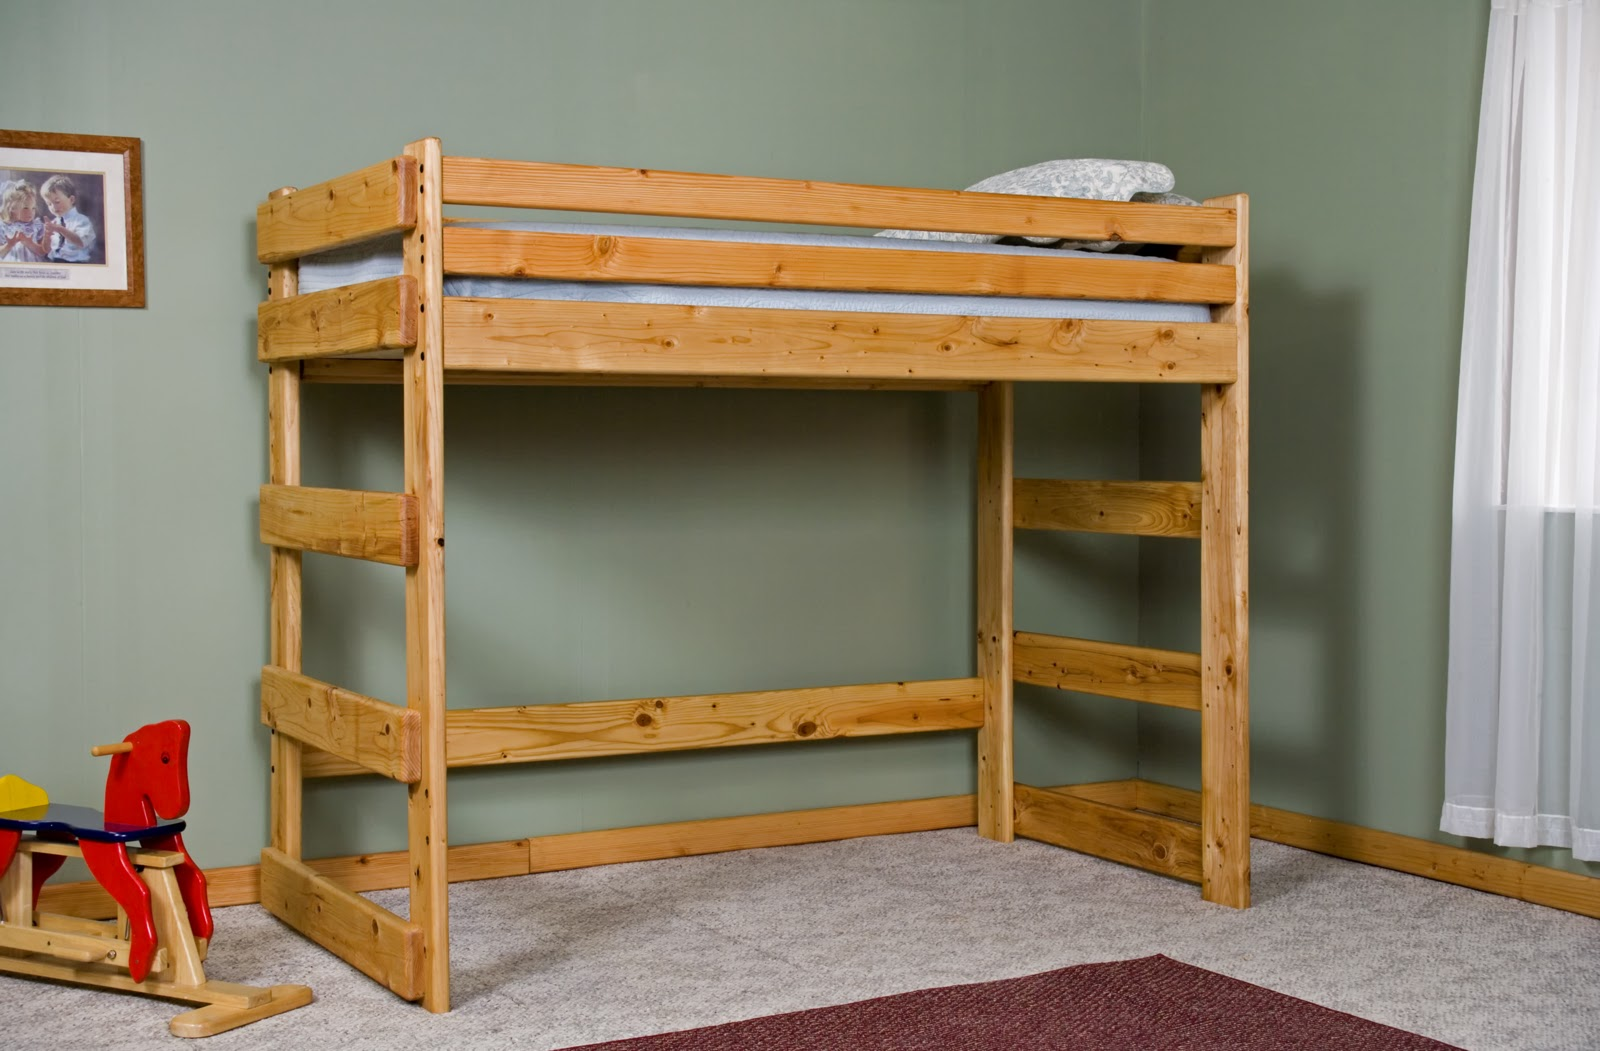 Legacy Bunk Beds: Products